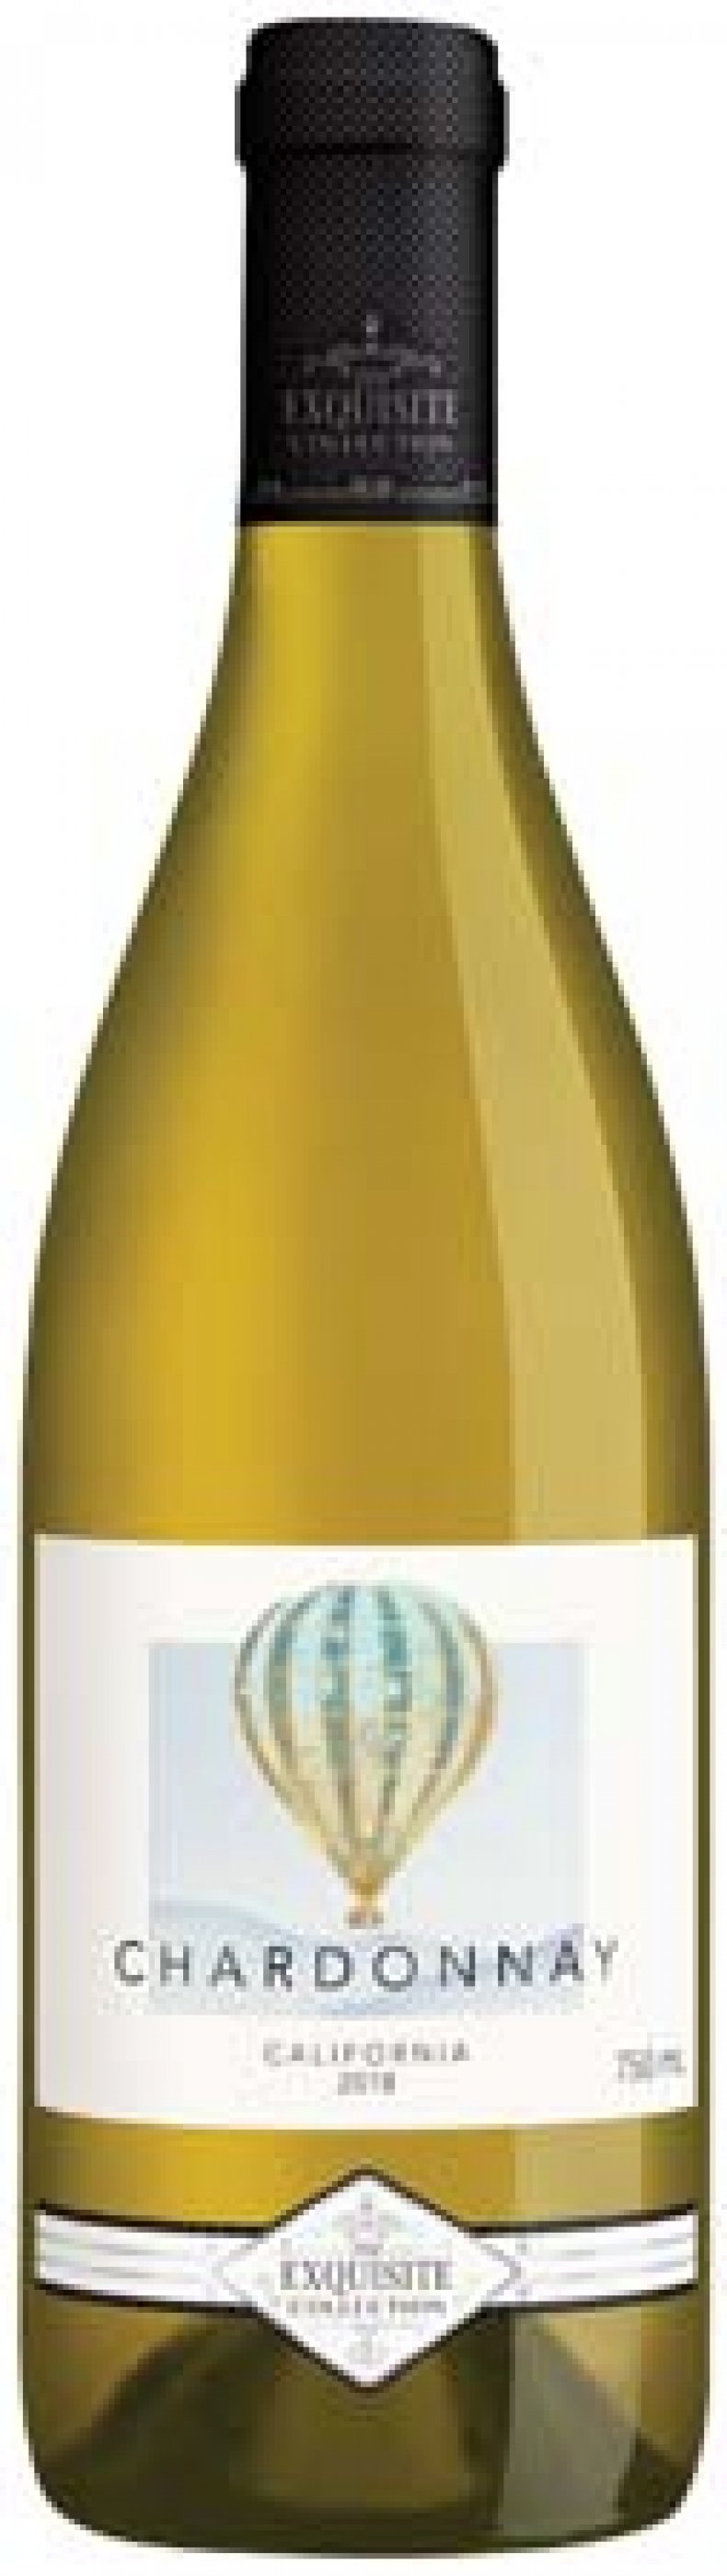 The Exquisite Collection Chardonnay